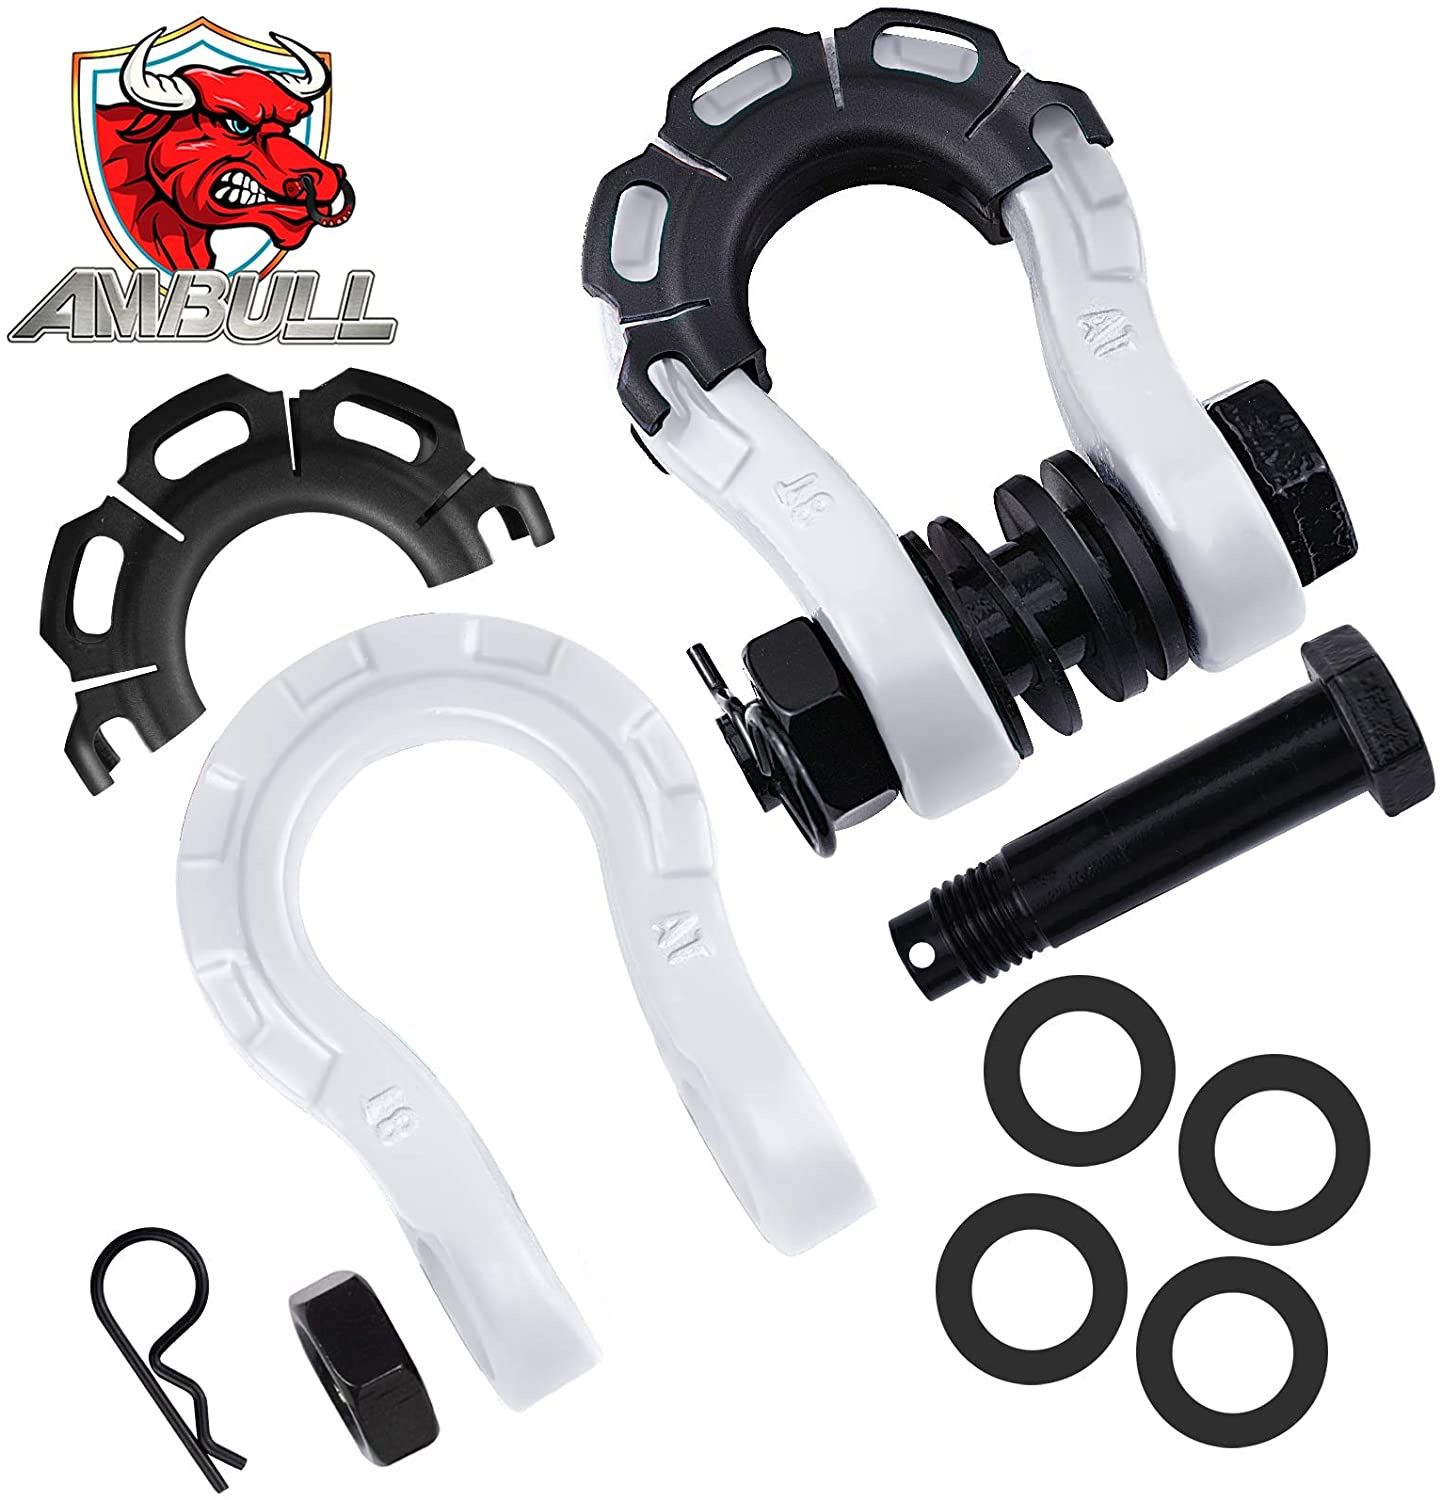 """AMBULL Shackles Upgrade 3/4"""" D Ring Shackle (2 Pack) 68,000 lbs Break Strength with 7/8"""" Pin, Isolator and Washer Kits for Use with Tow Strap, Winch,"""